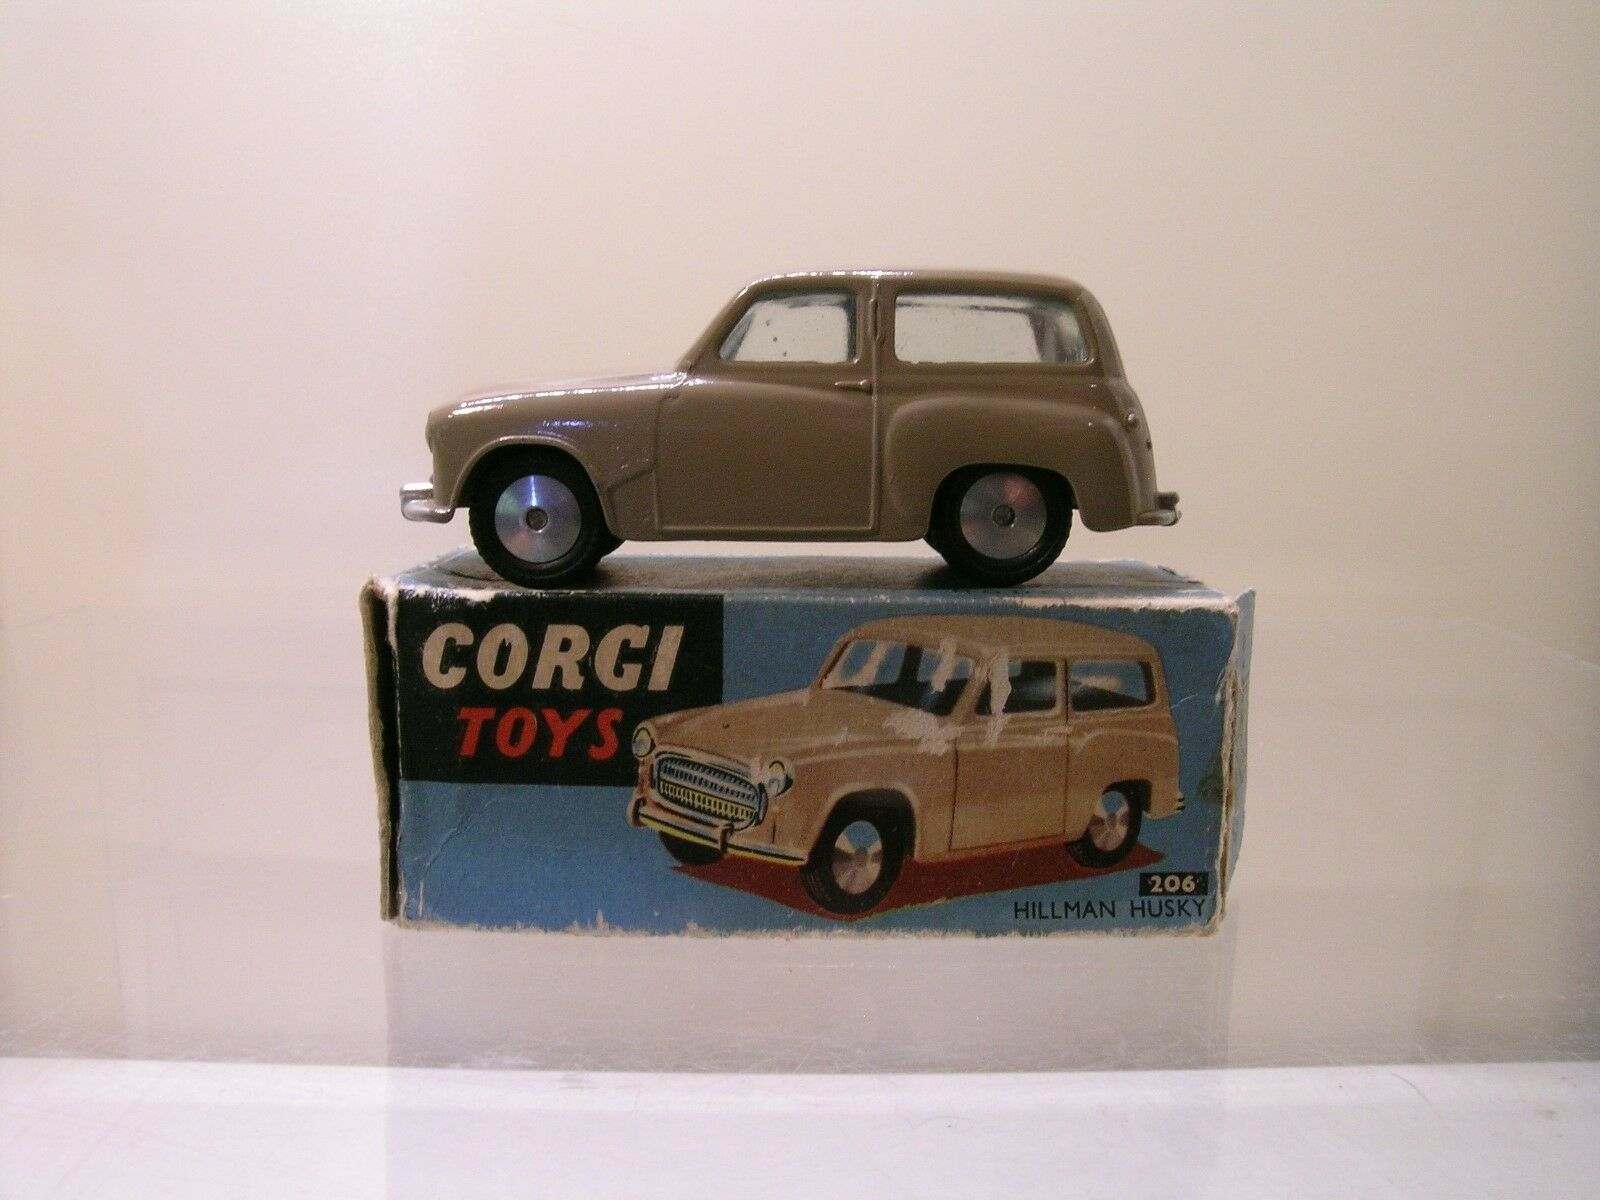 CORGI TOYS UK No.206 HILLMAN HUSKY ESTATE LIGHT Marronee blu OLD BOX  SCALE 1 43